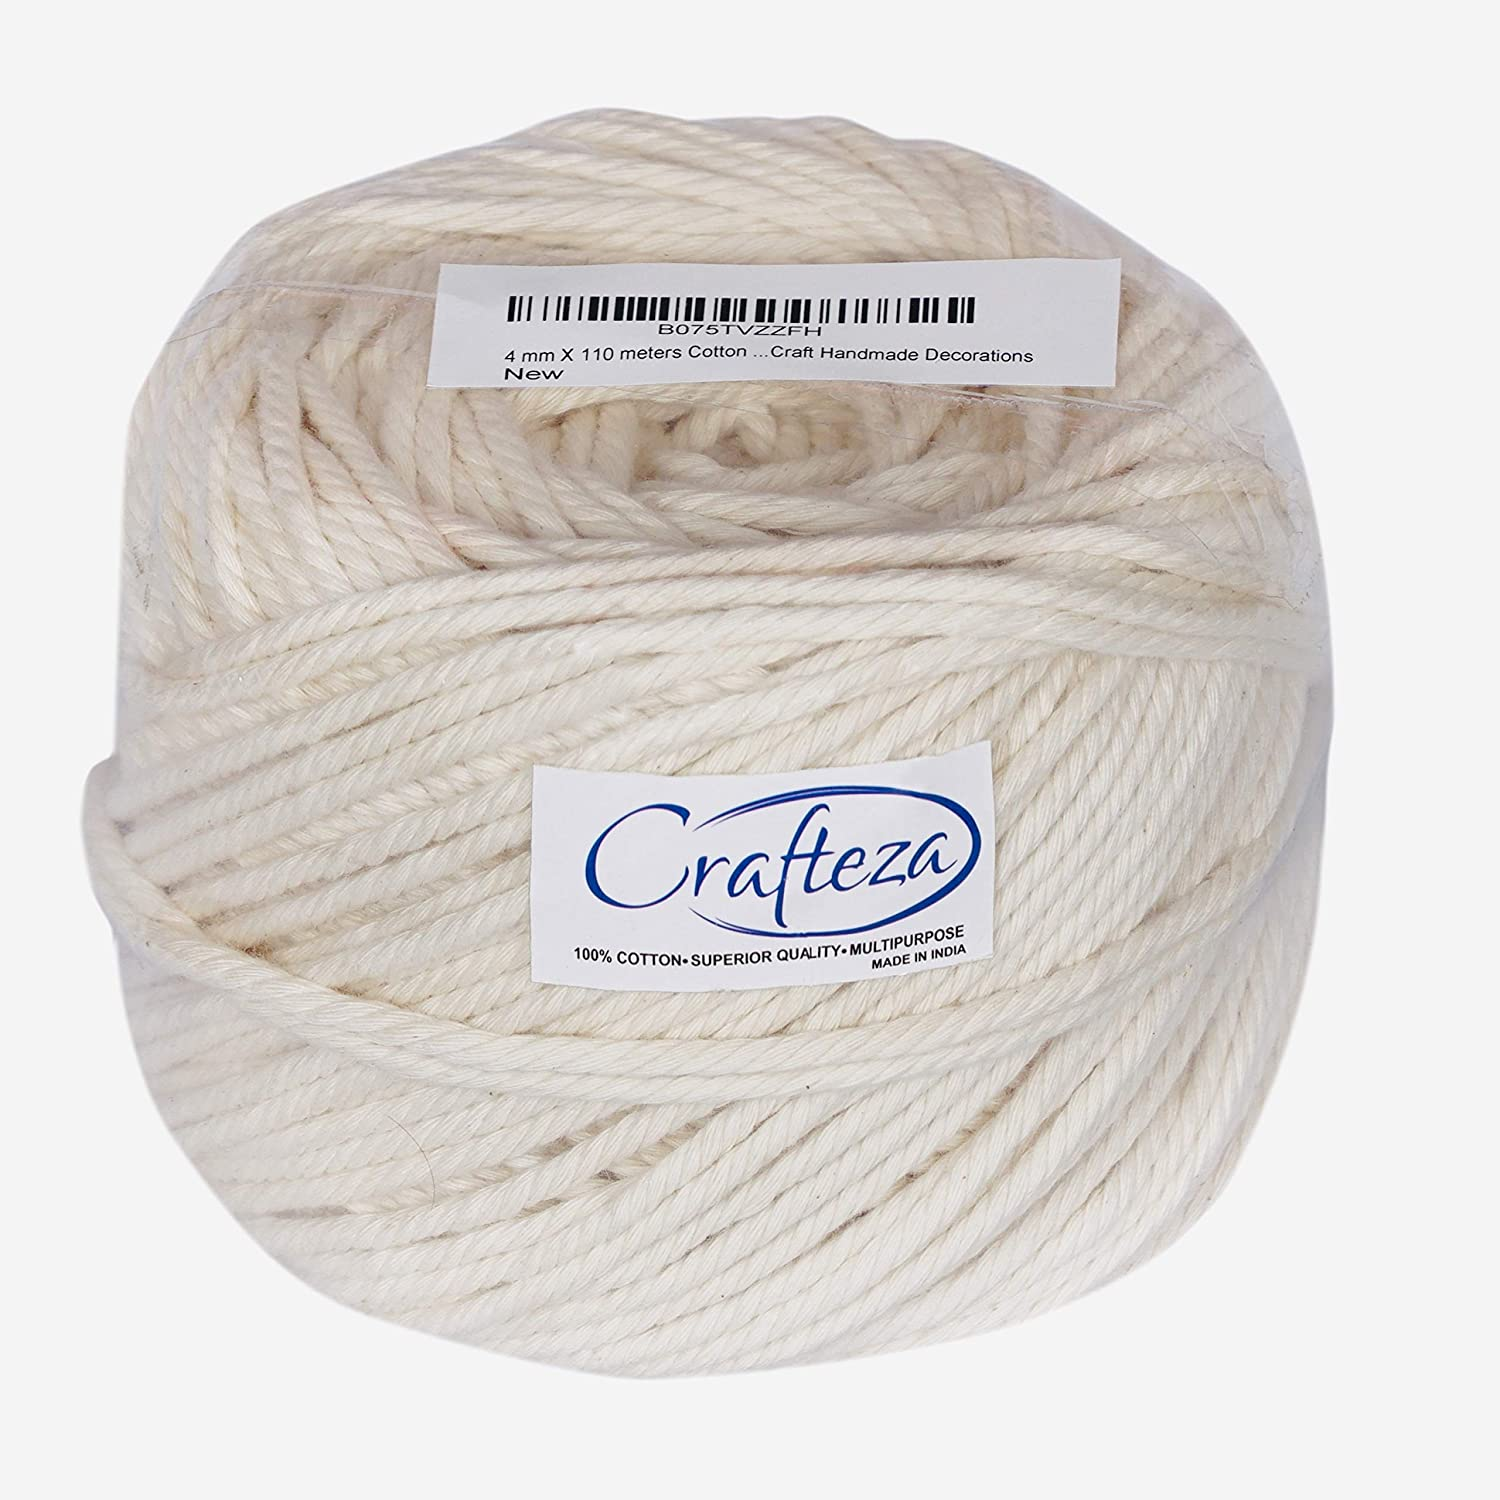 Macrame Cord 4mm X 110m(about 120 yd) Natural Virgin Cotton Handmade  Decorations Macrame Wall Hangings Plant Hanger Crocheting Bohemia Dream  Catcher